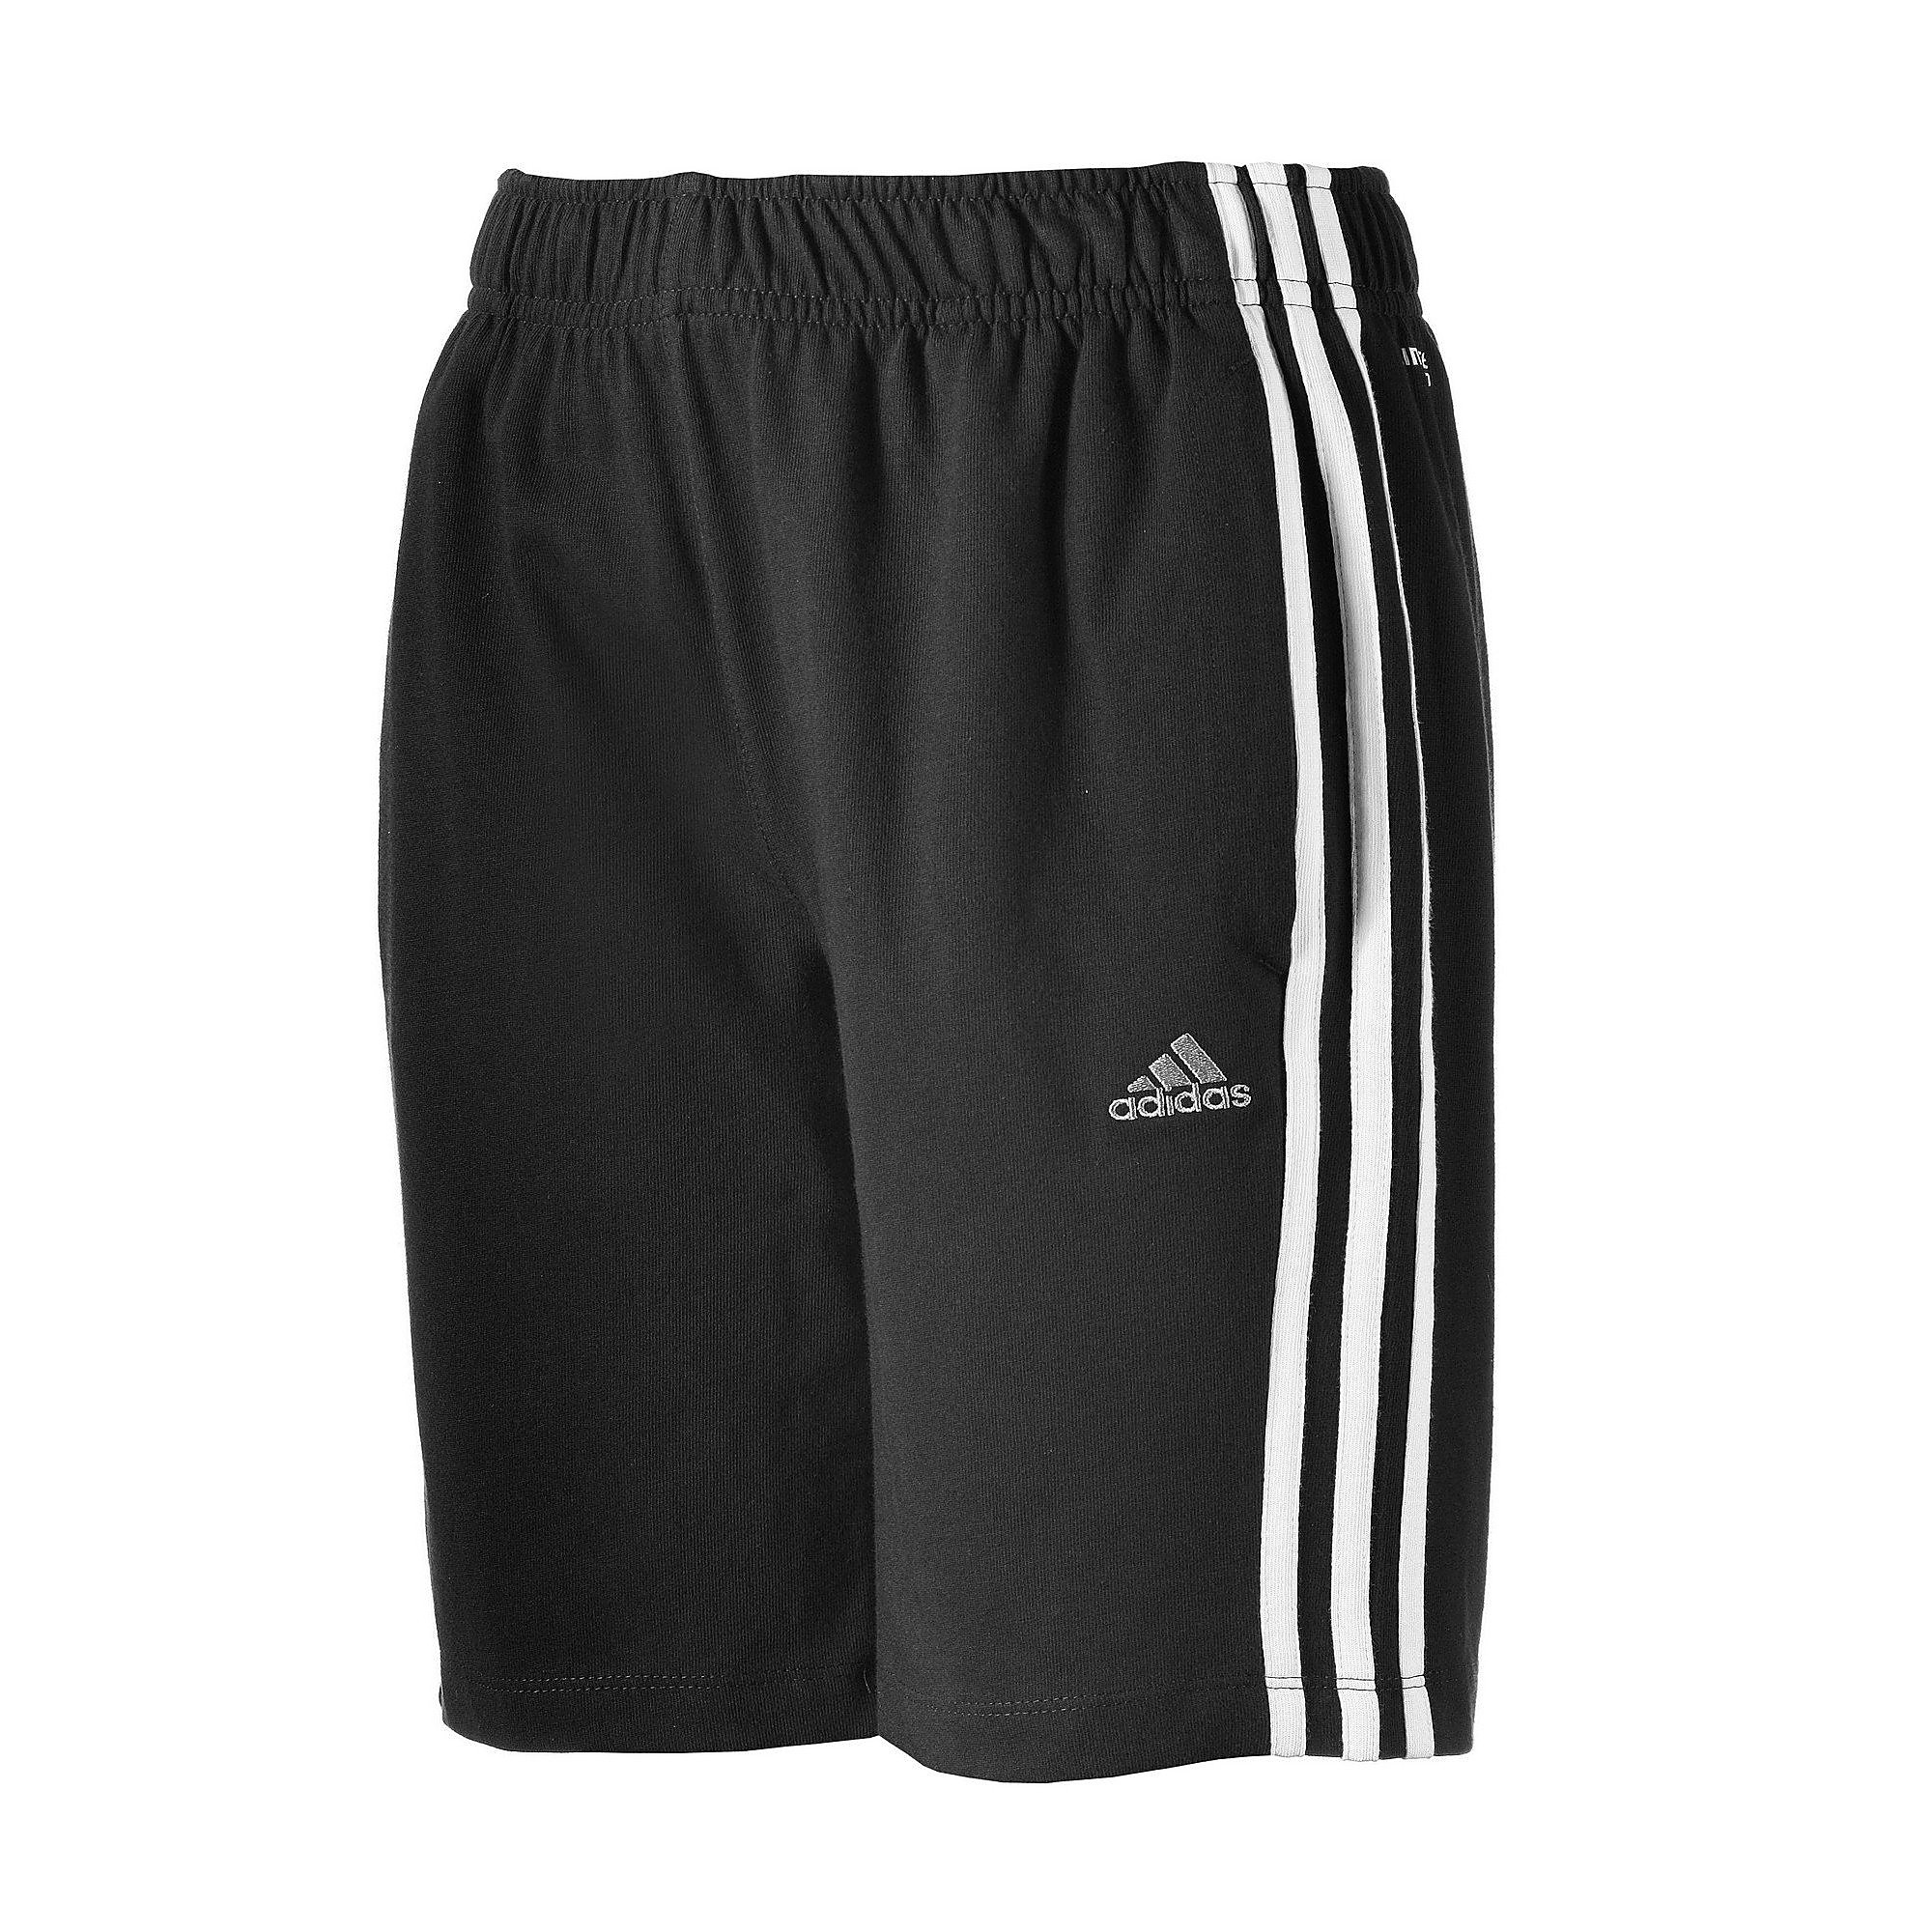 adidas 3 STRIPES JERSEY SHORT